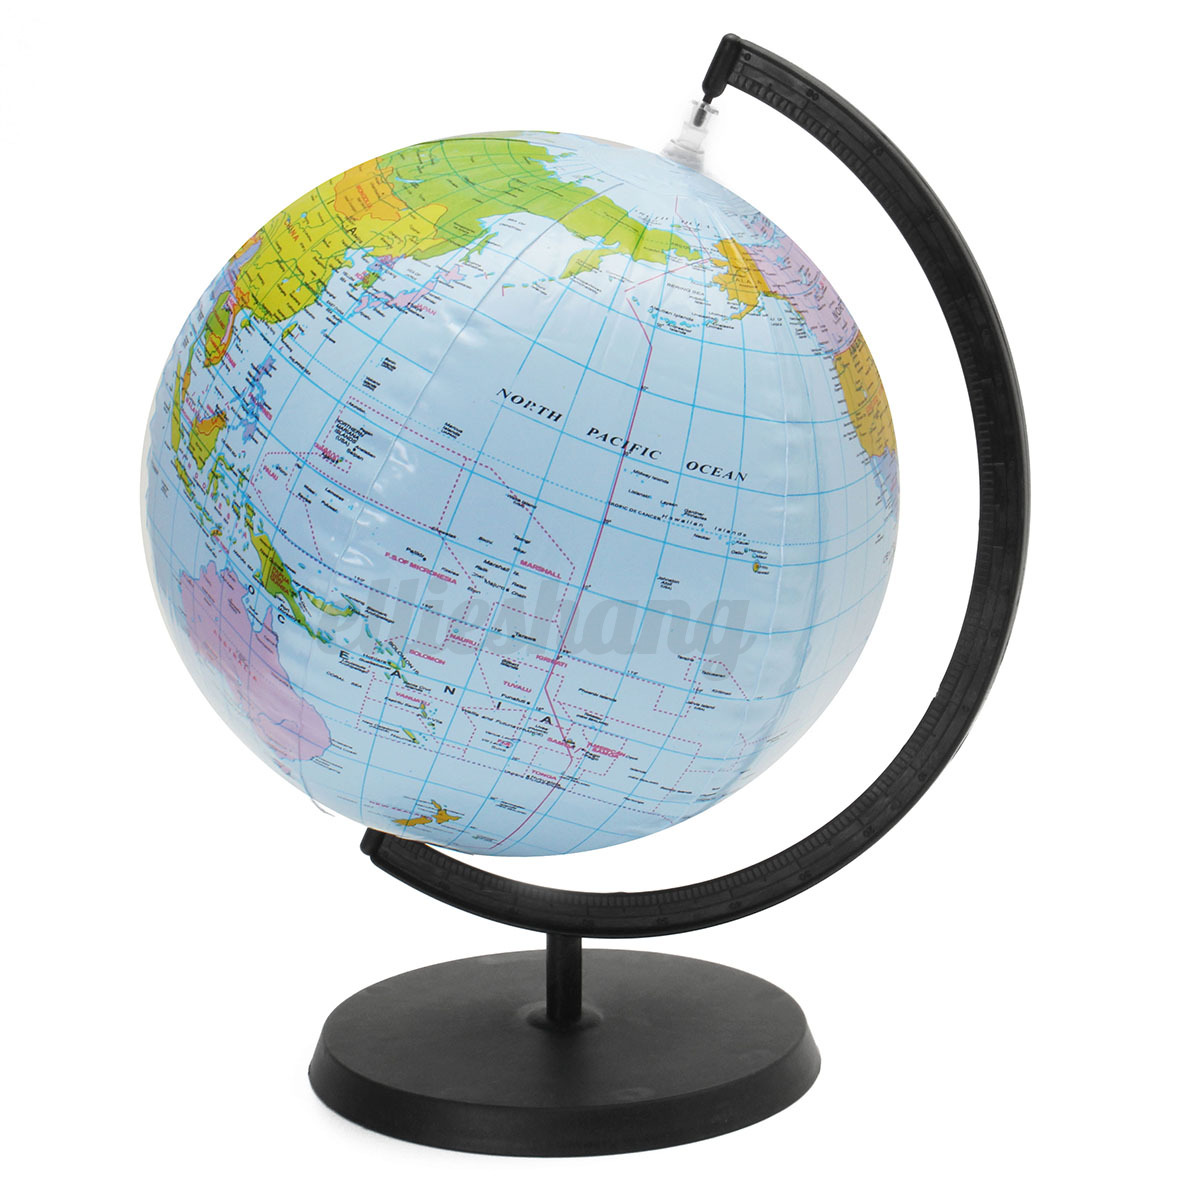 30cm inflatable world globe earth teaching geography map